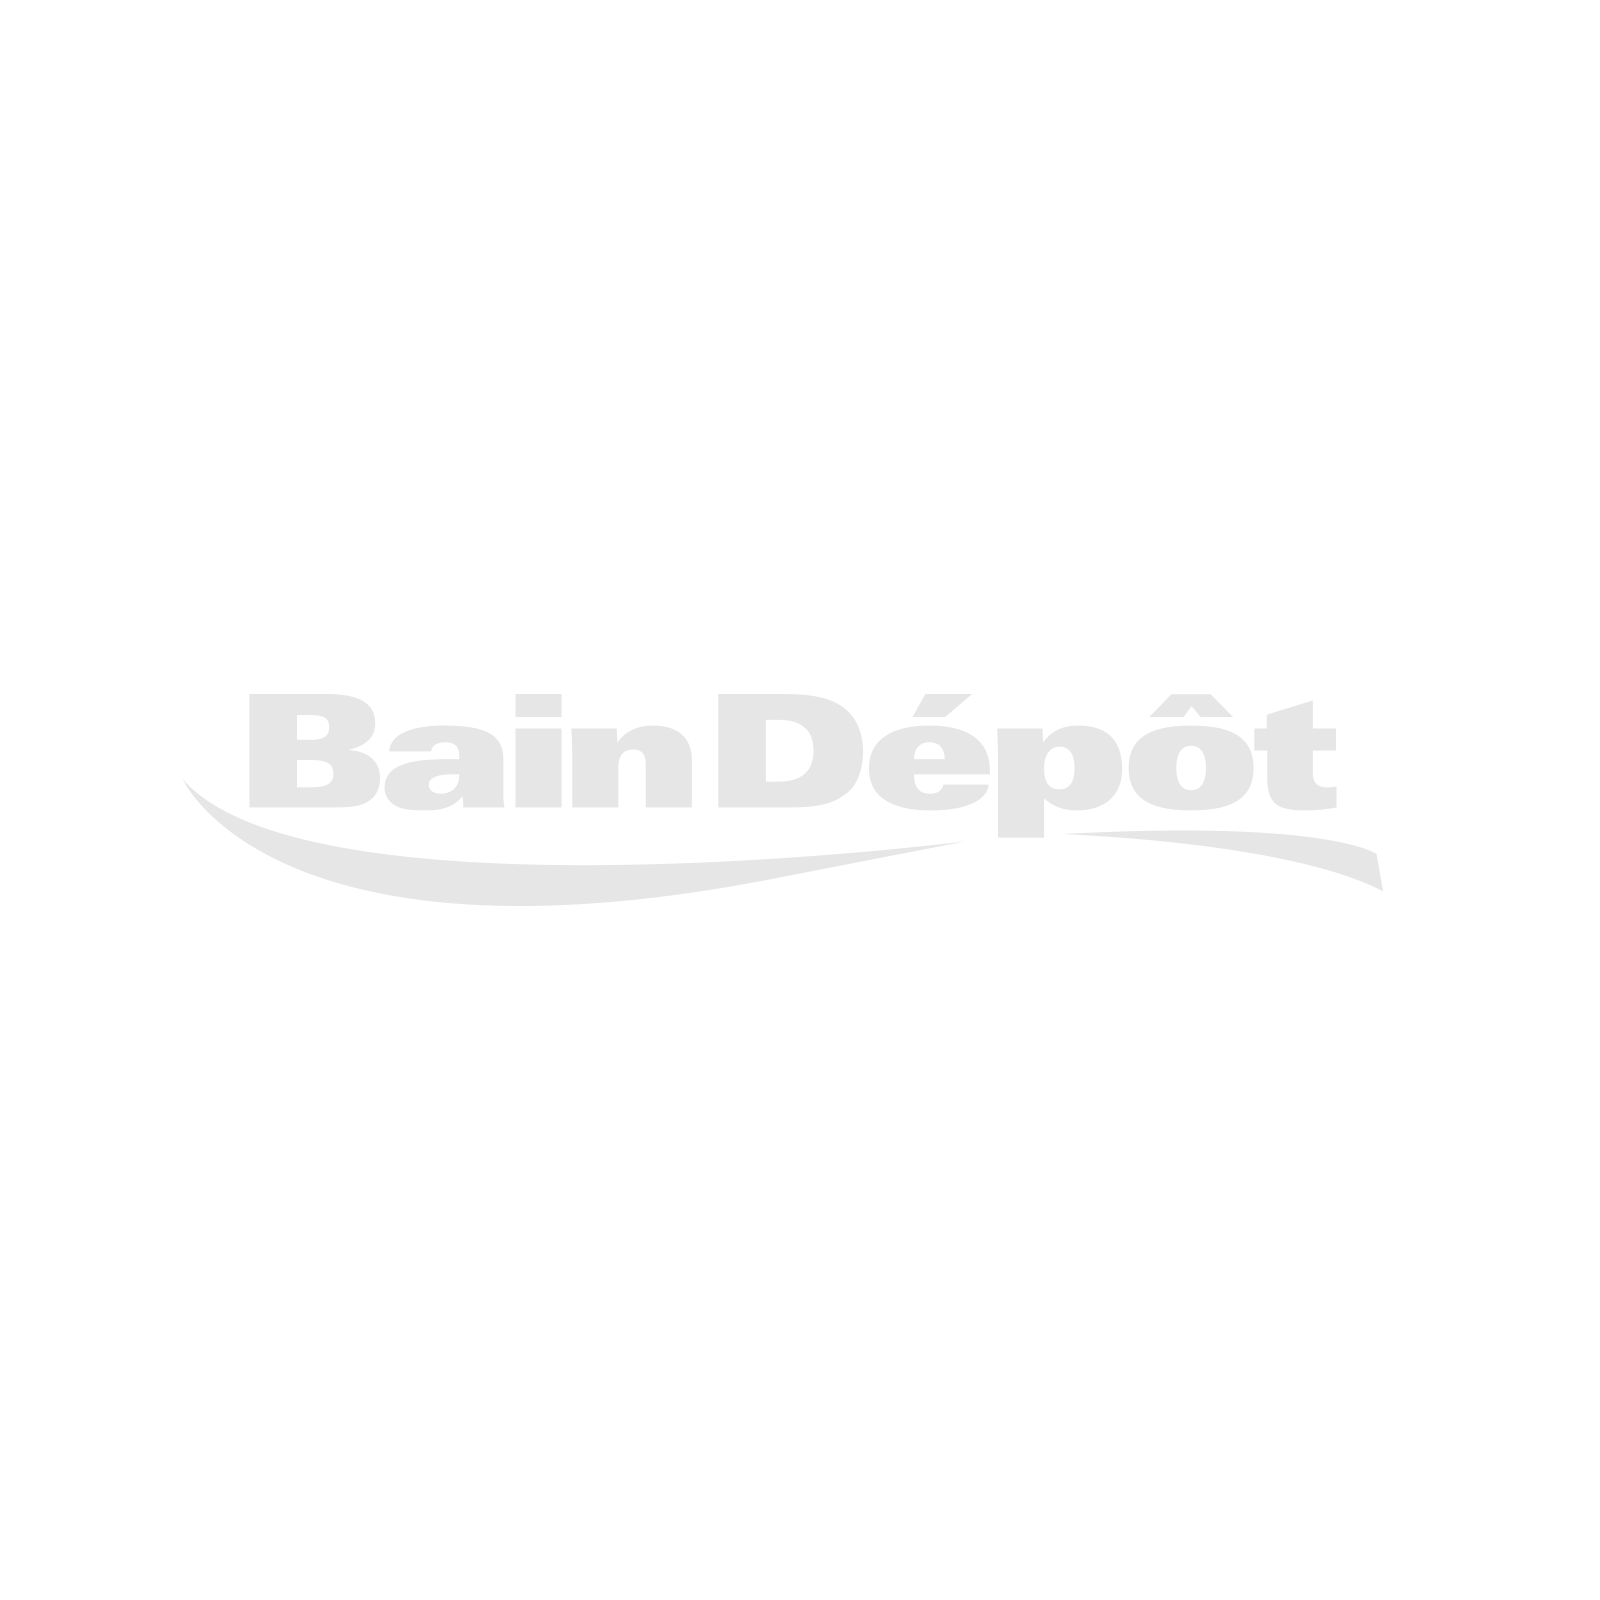 Bamboo extendable bathtub caddy